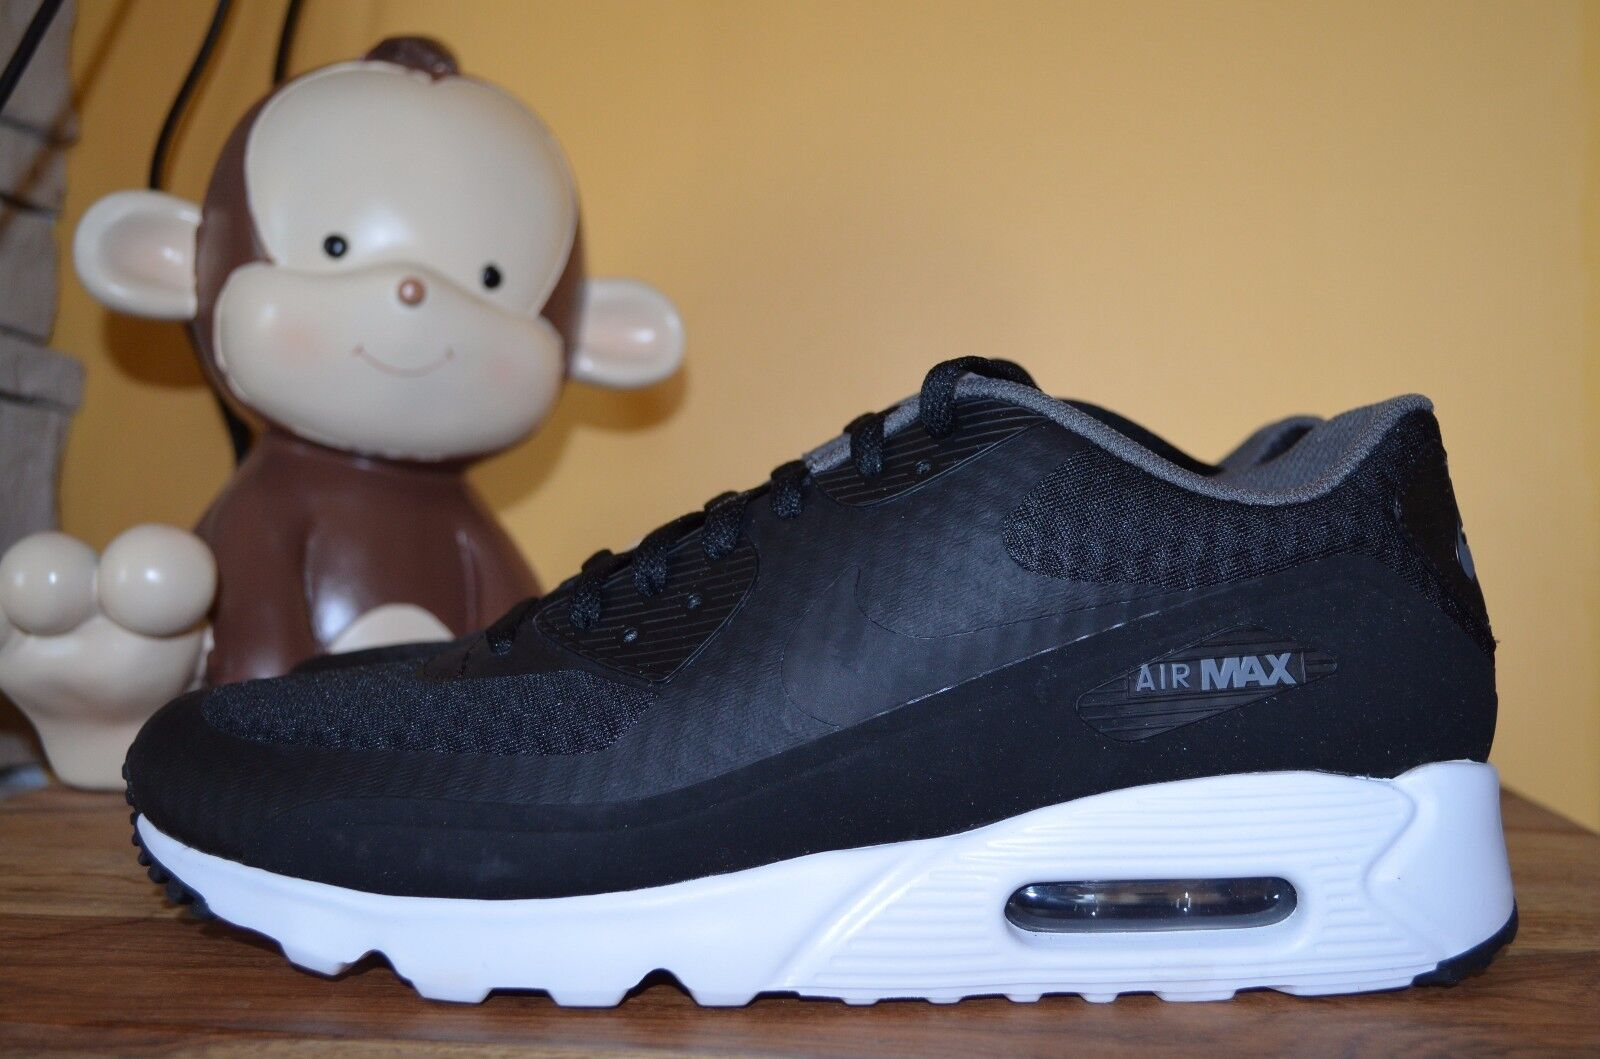 innovative design 7c6a5 15d45 NEW NIKE AIR MAX 90 ULTRA ESSENTIAL Trainers SZ 10 - 11.5 Black/White  819474-013